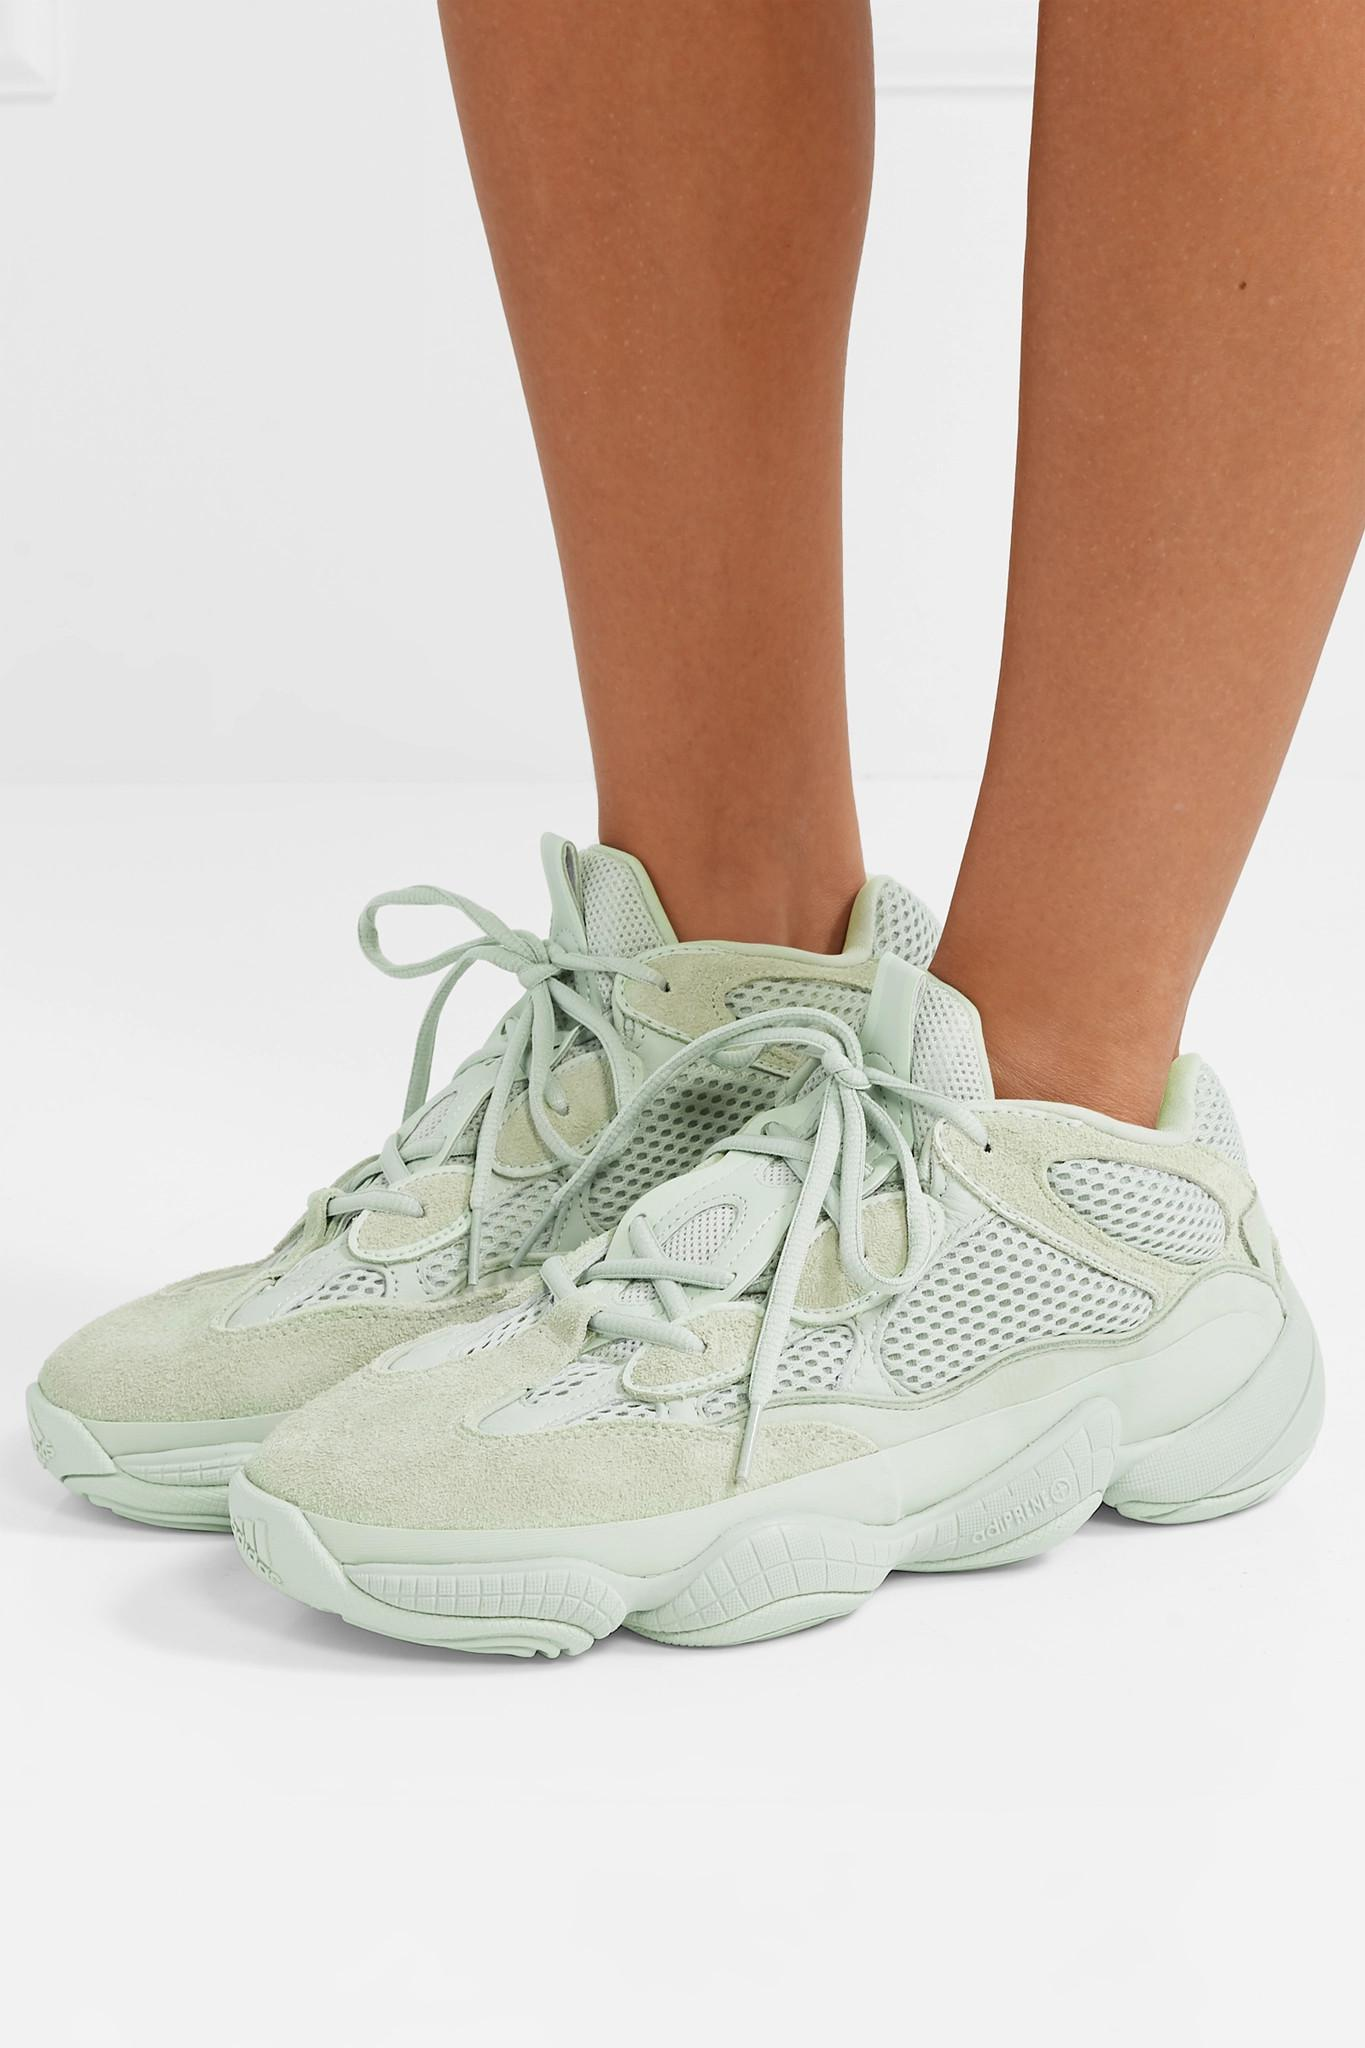 best sneakers 799e6 d2135 adidas Originals Yeezy 500 Leather, Suede And Mesh Sneakers ...